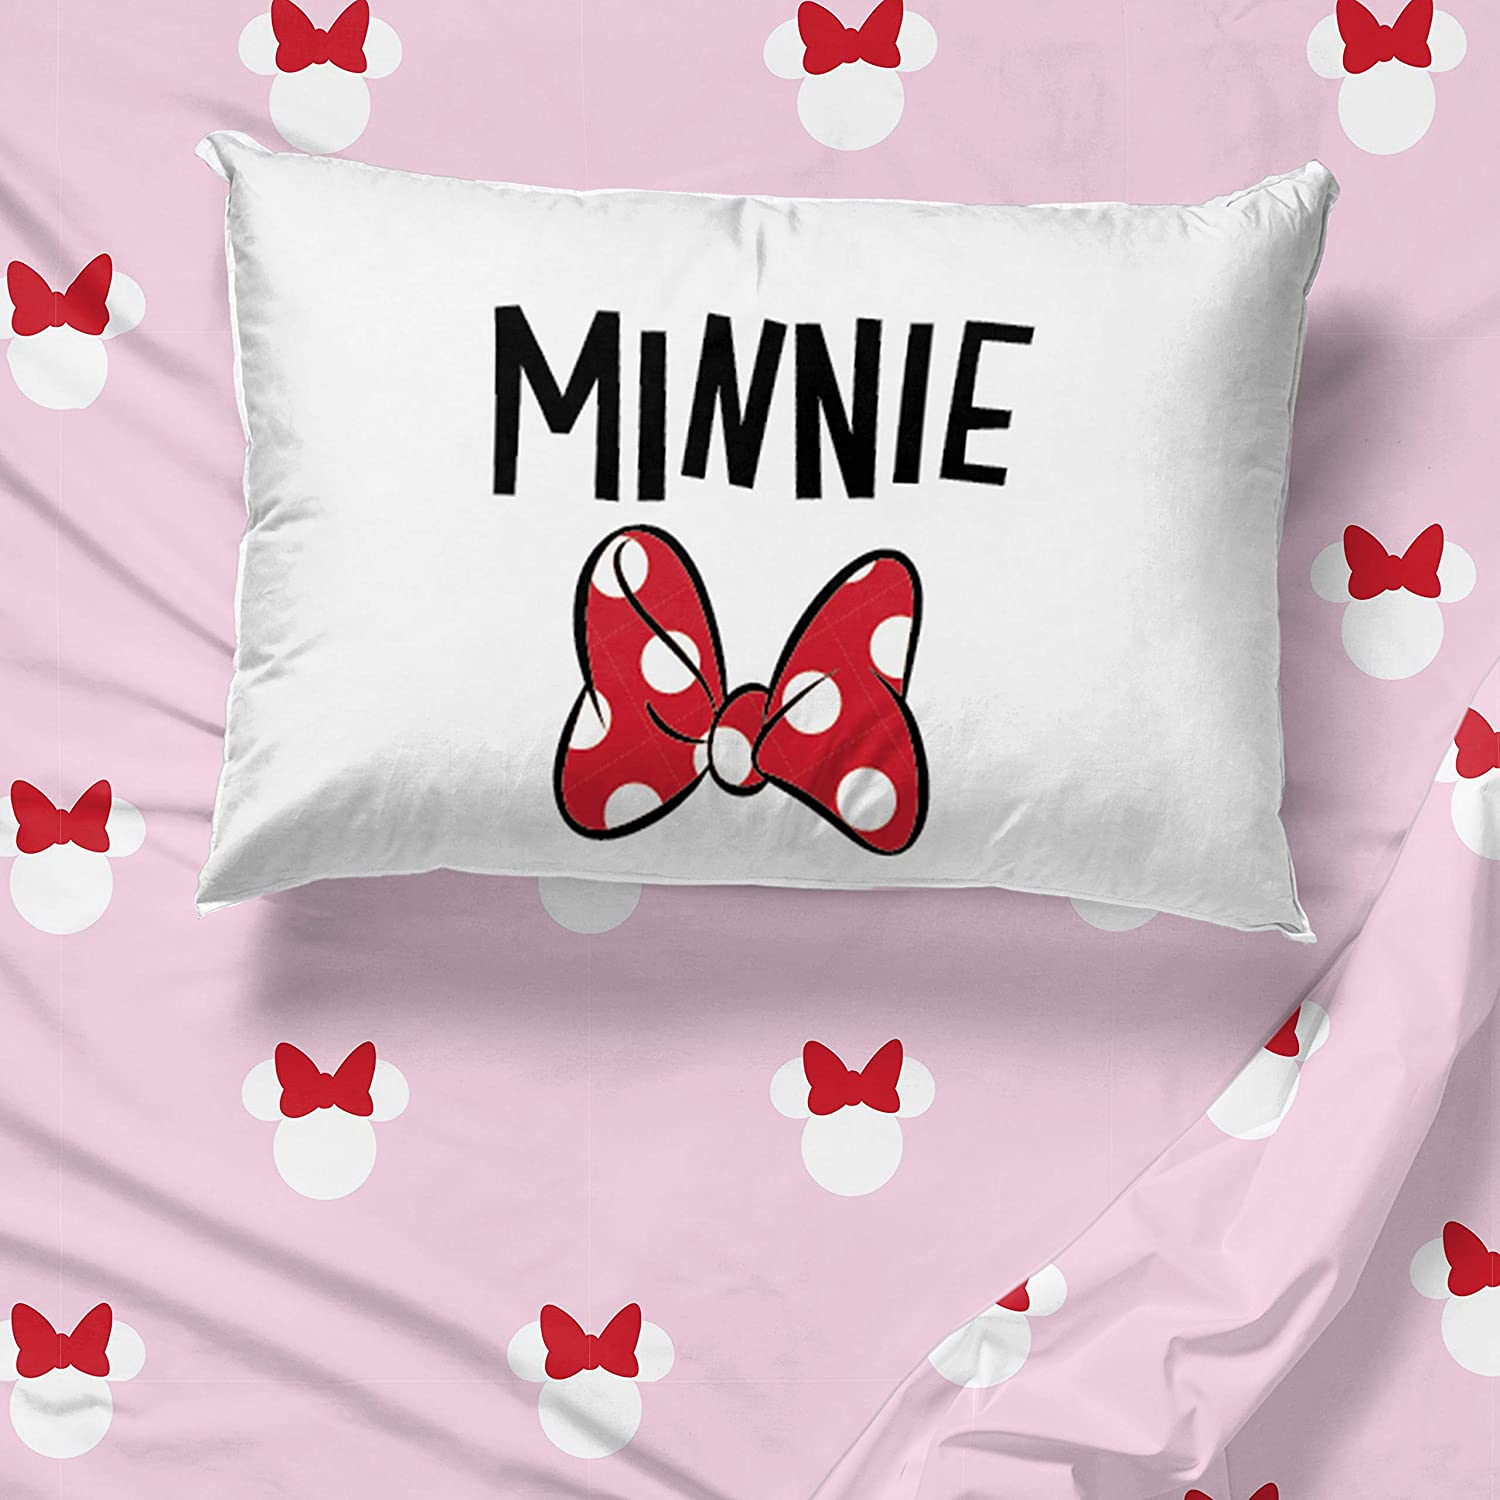 Super Soft Bedding Fade Resistant Microfiber - Includes Comforter Jay Franco Disney Minnie Mouse I Love Minnie 5 Piece Twin Bed Set Sheet Set Official Disney Product Pillow